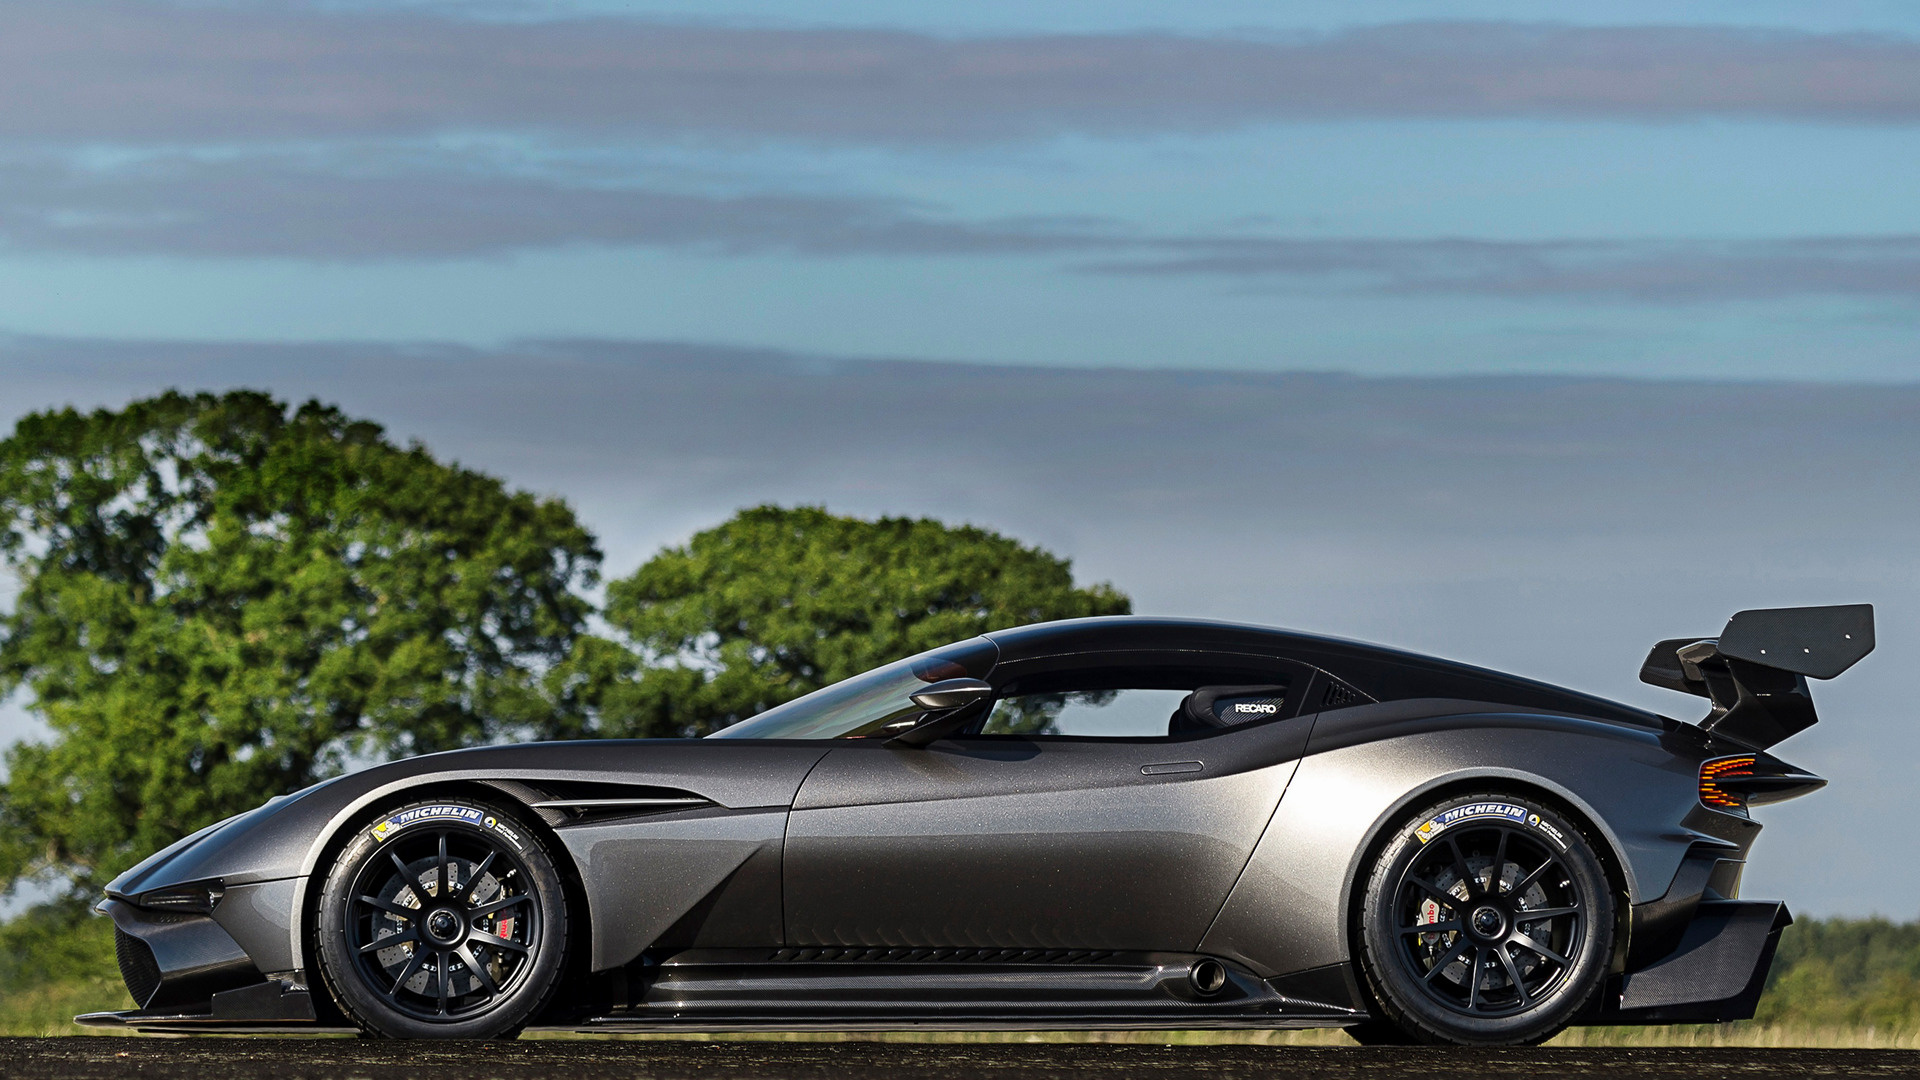 Aston Martin Vulcan Wallpaper Hd on aston martin vulcan